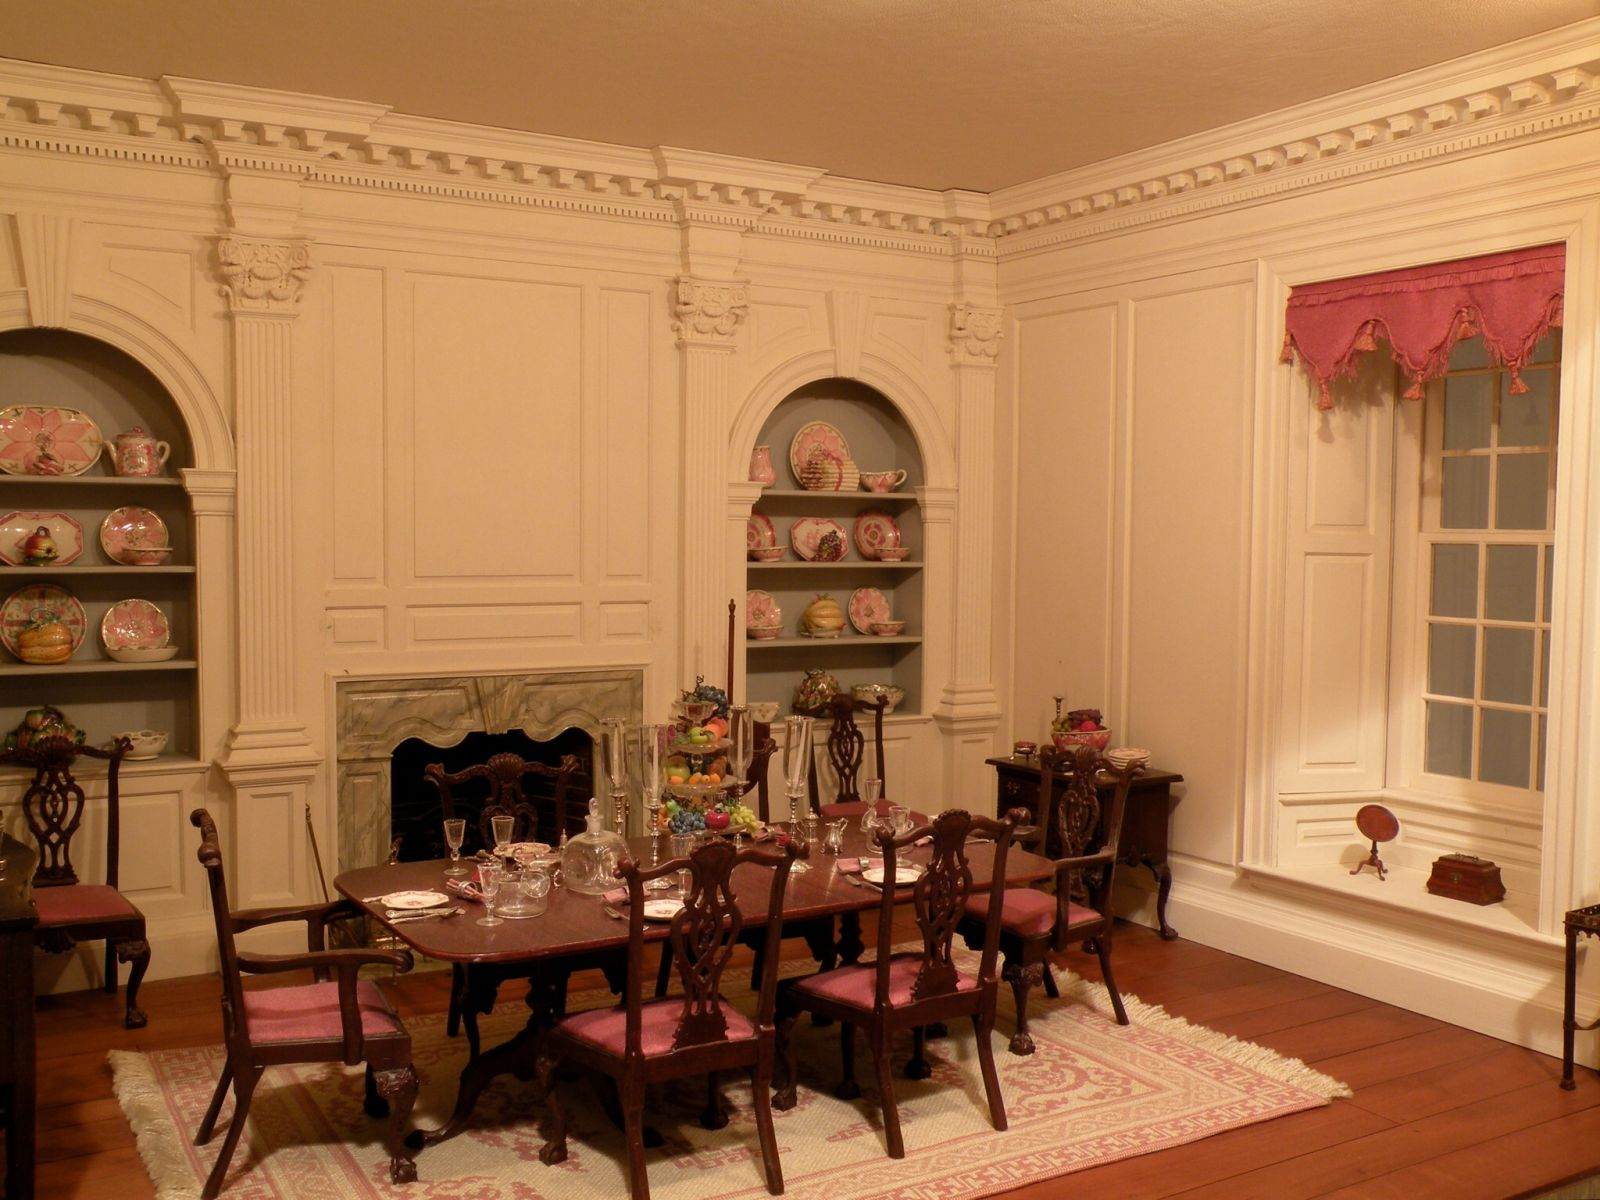 Dining room from Twin Manors by Wm. R. Robertson